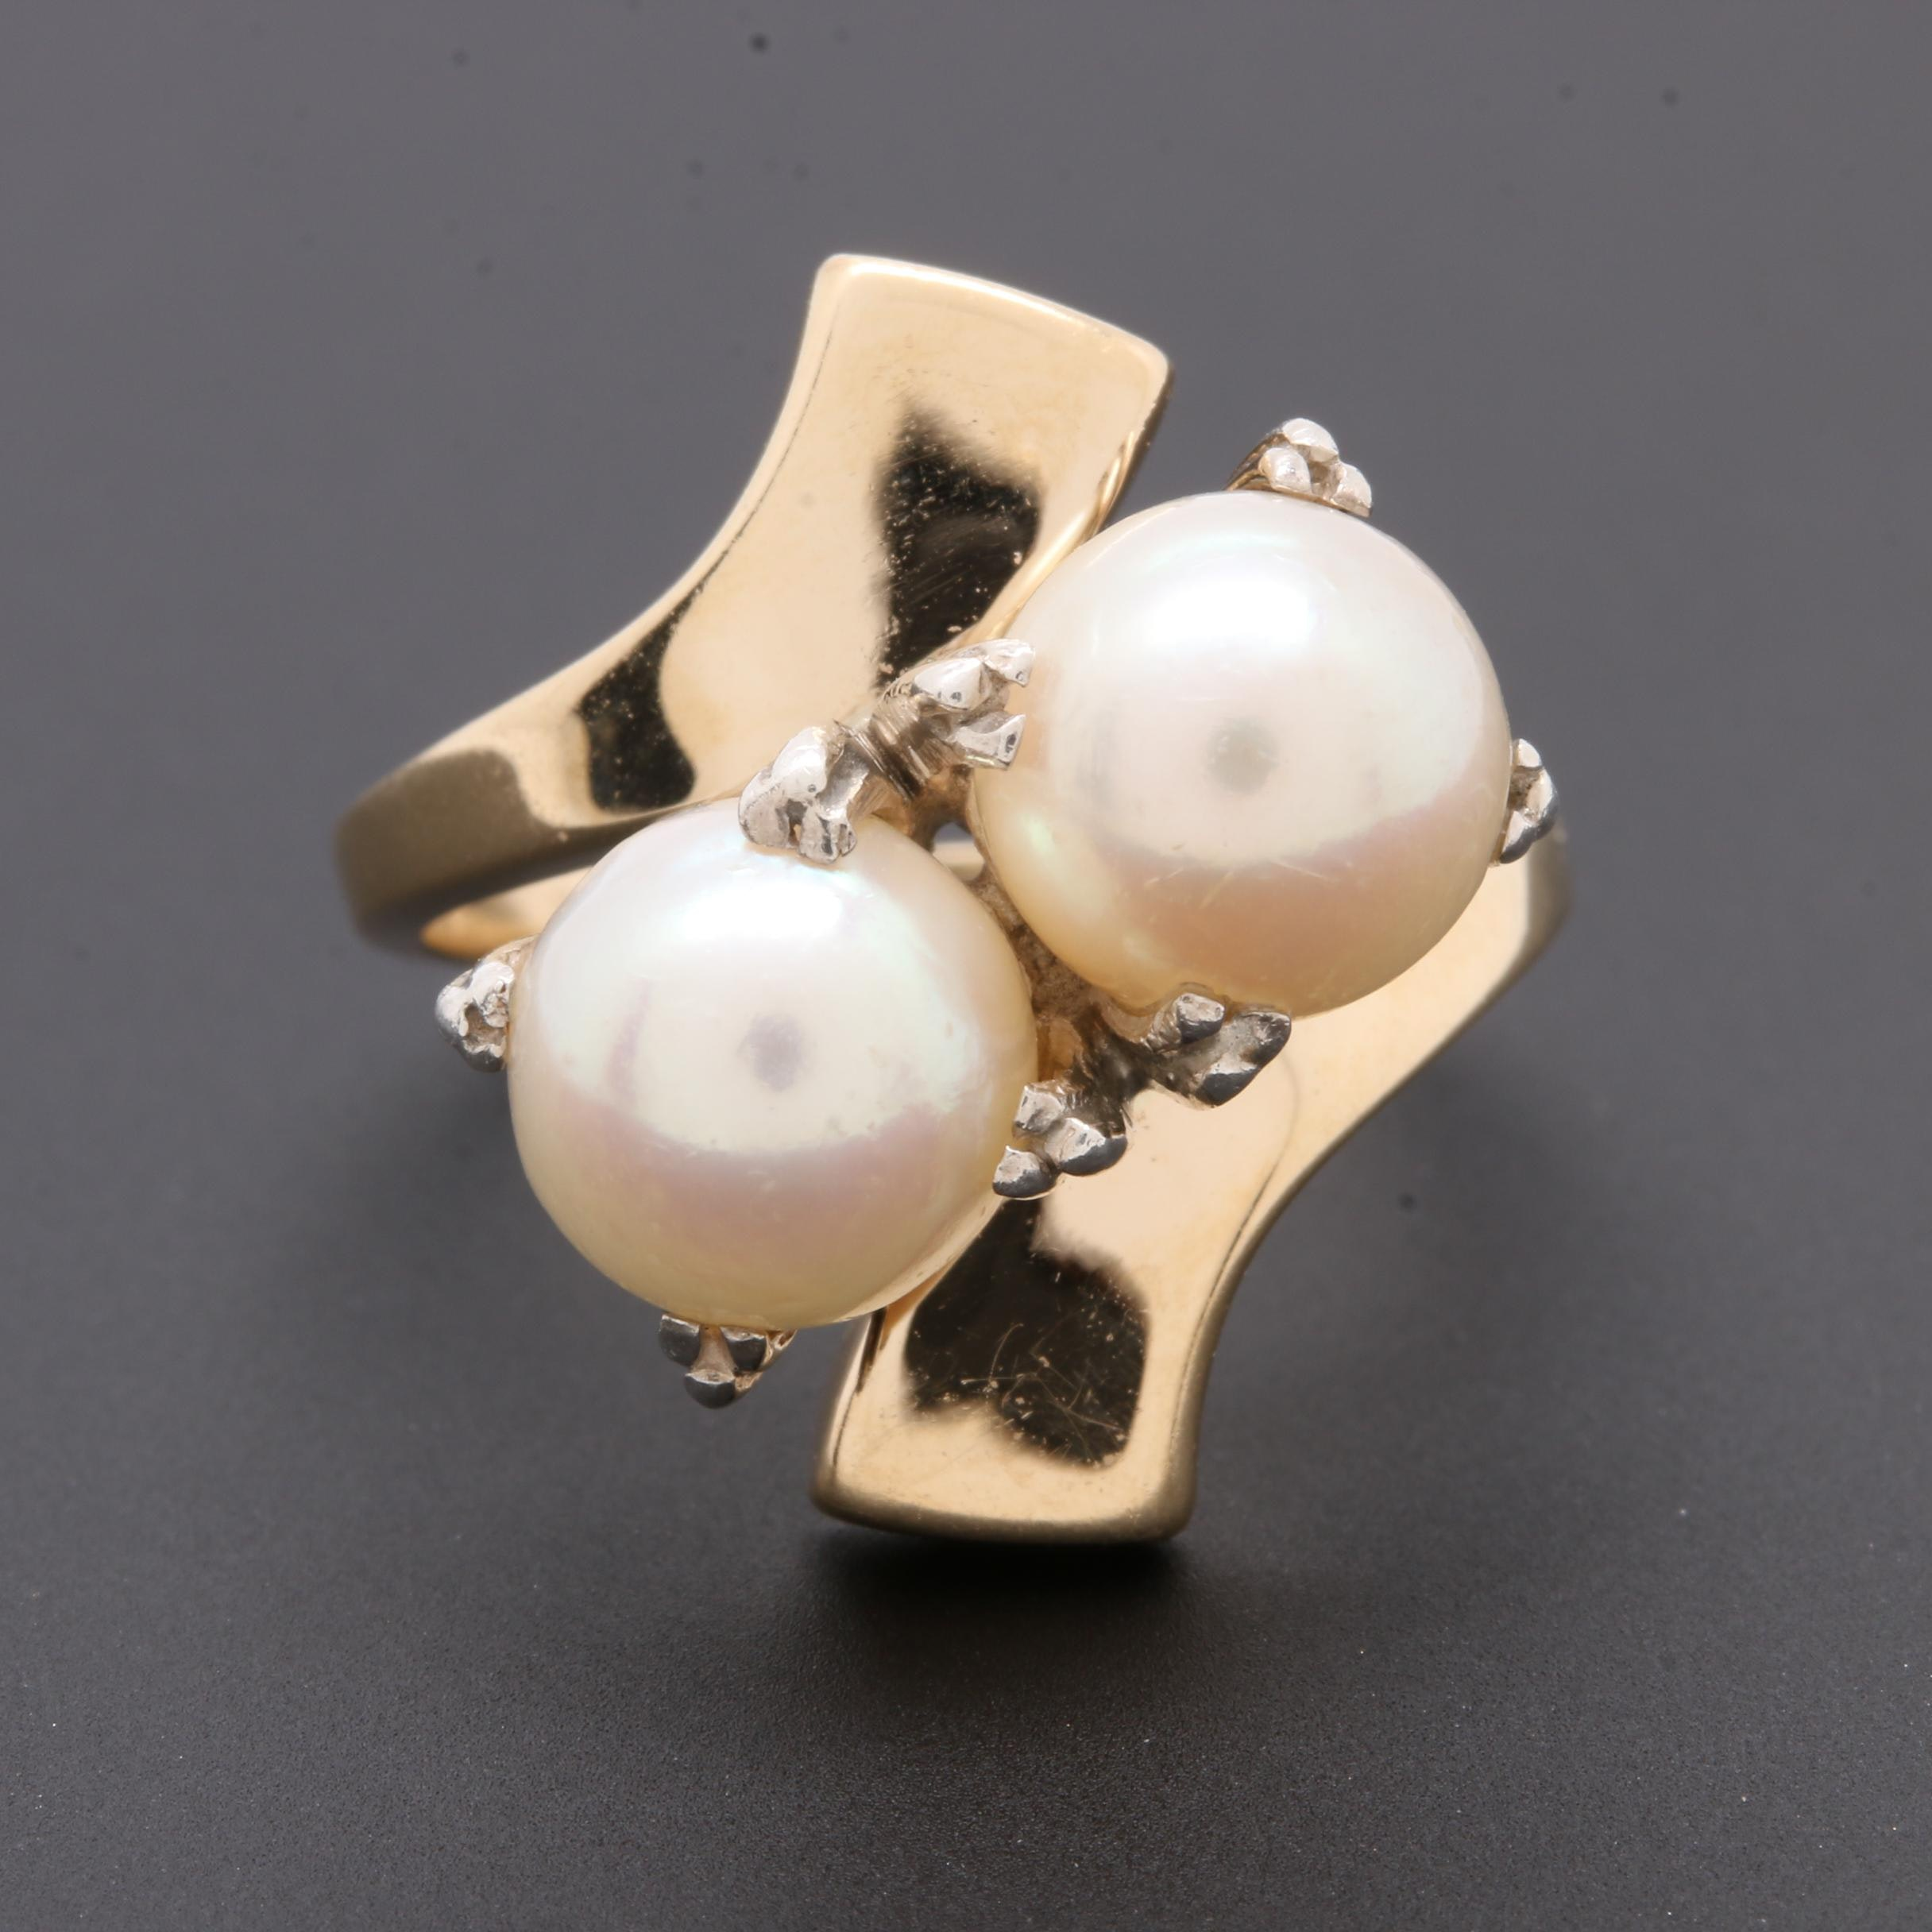 Vintage 1960s 14K Yellow Gold Cultured Pearl Ring with 900 Silver Prongs